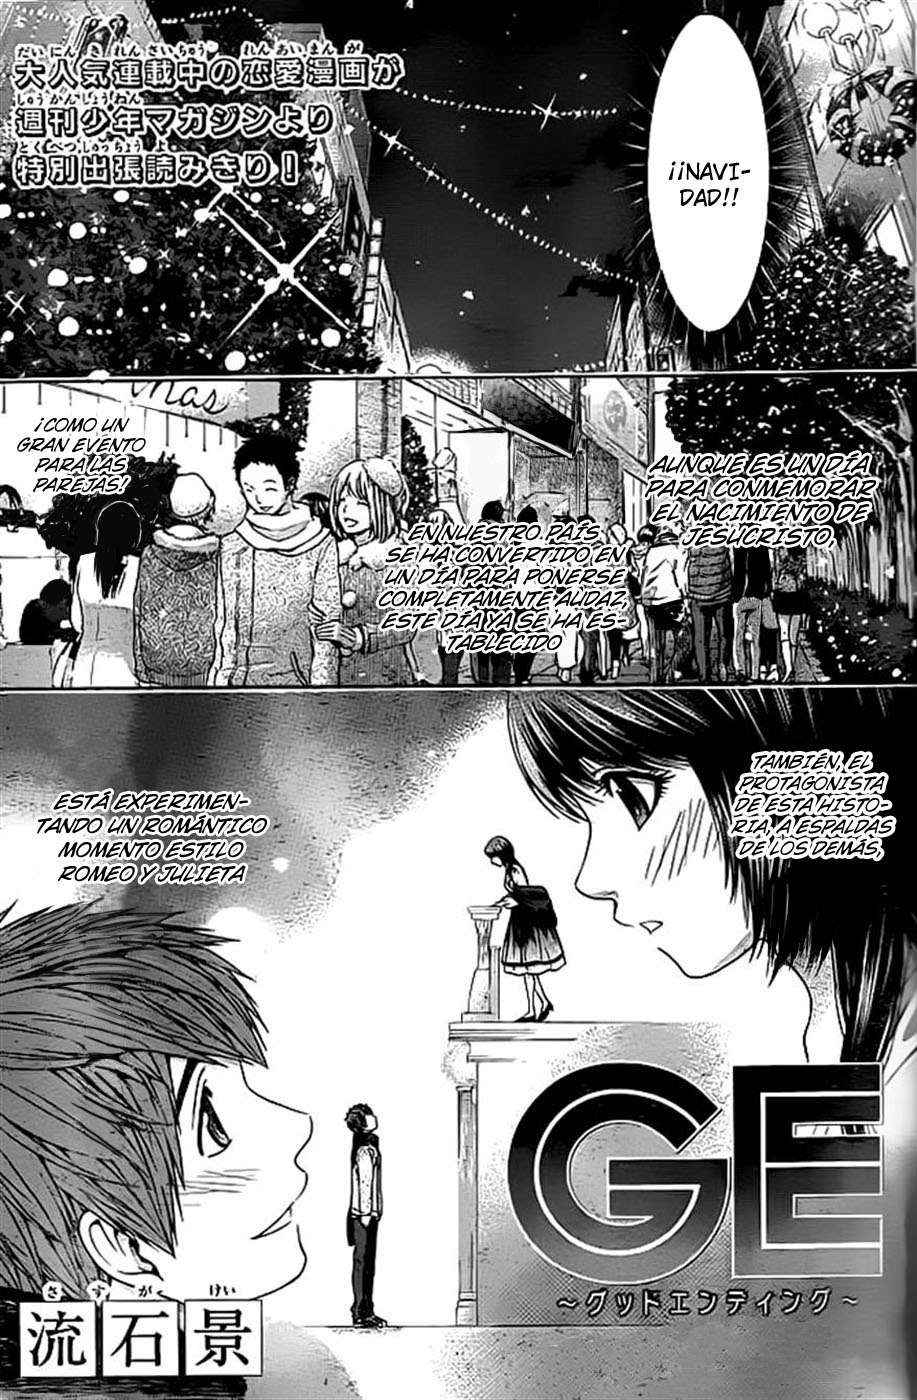 http://c5.ninemanga.com/es_manga/35/419/482050/f15065b766e23657e2c382de566ba670.jpg Page 3